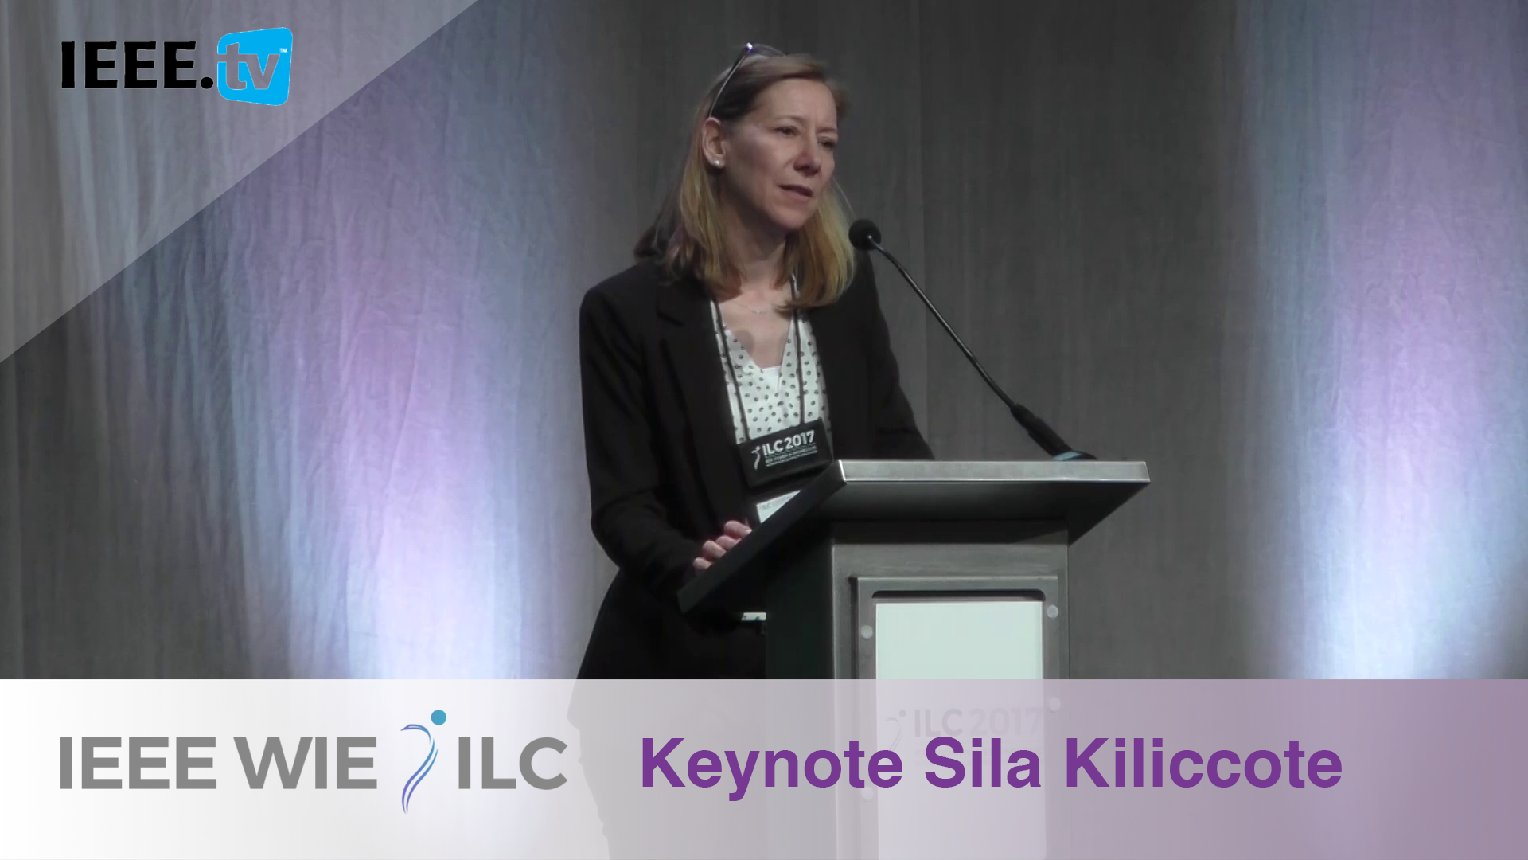 Grid Integration Systems and Mobility with Keynote Sila Kiliccote - IEEE WIE ILC 2017